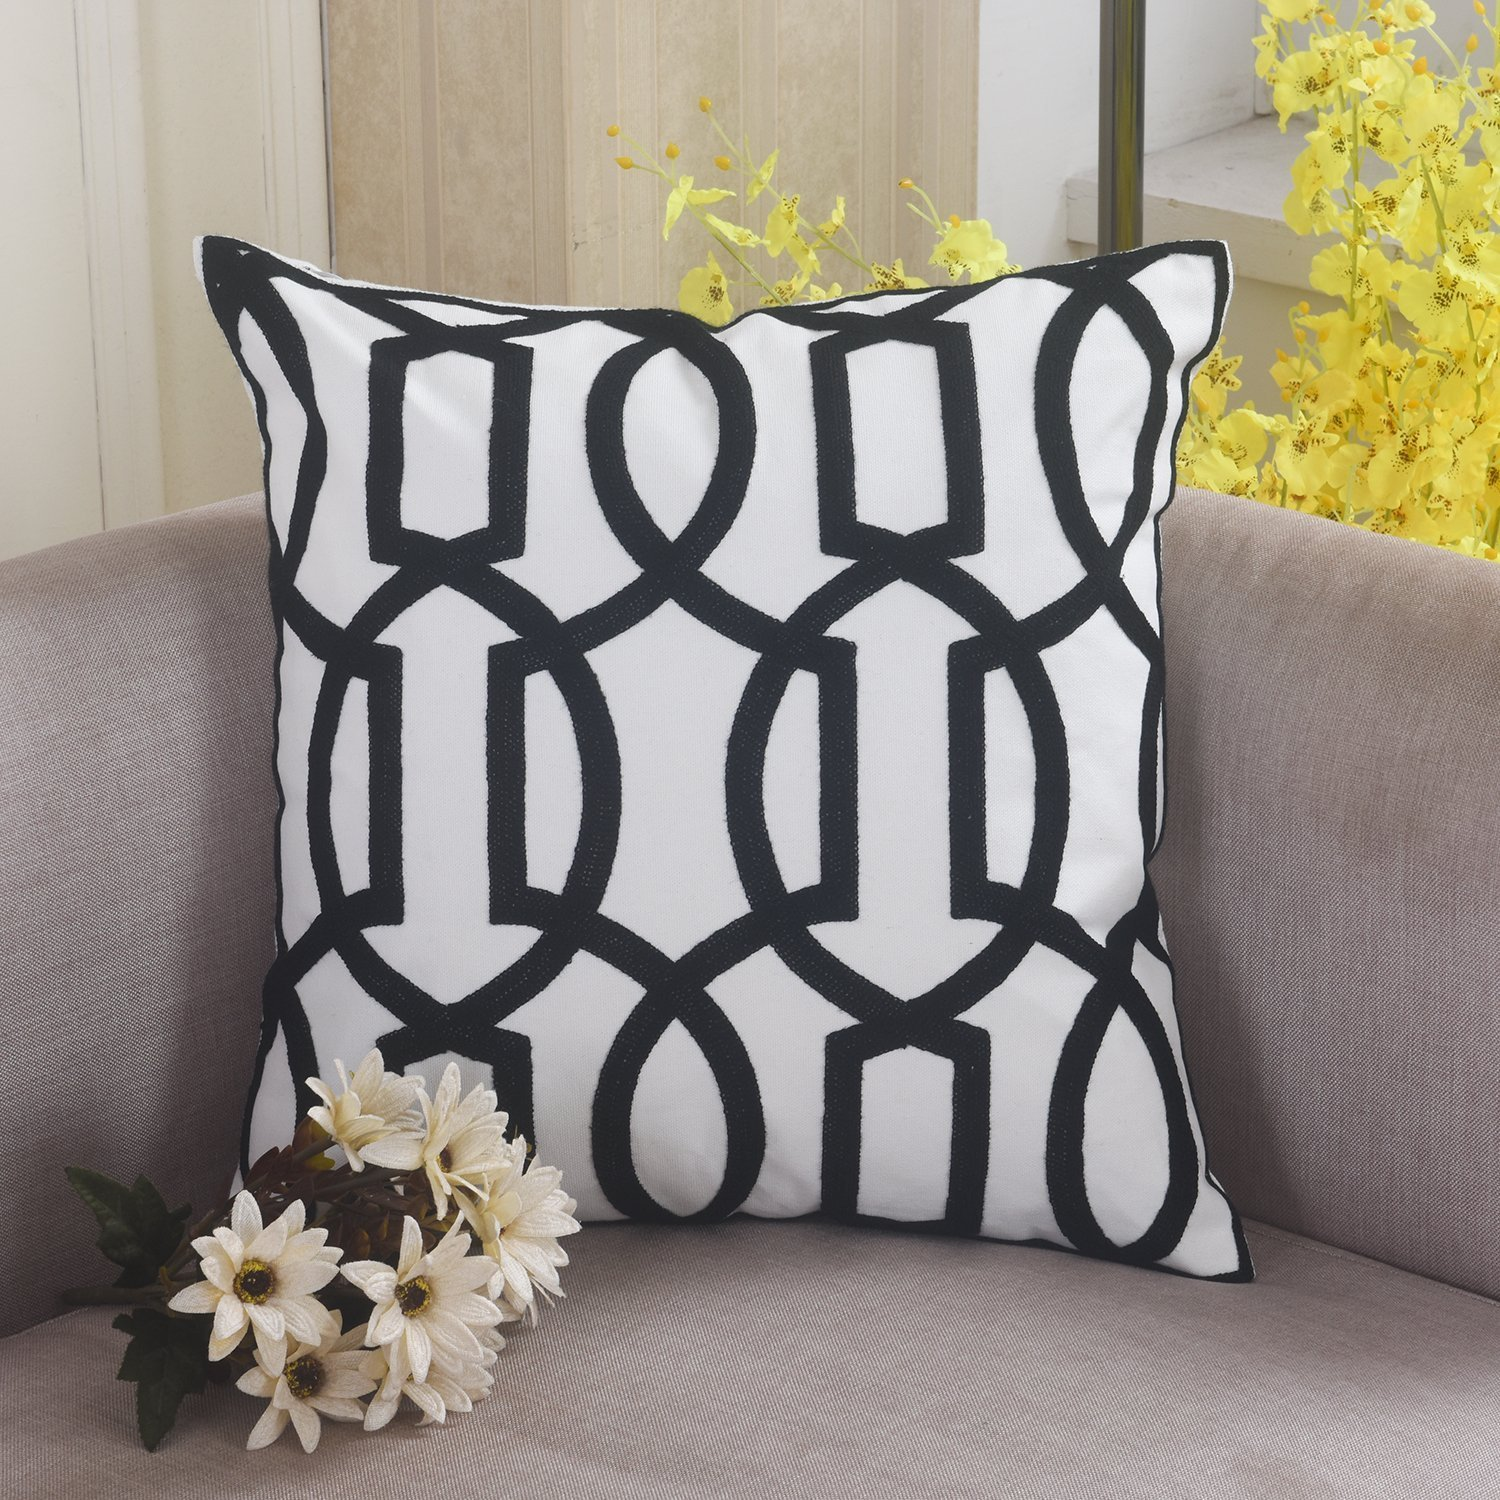 Home Brilliant Decorative Throw Pillow Lattice Wave Pattern Embroidered Patio Cushion Cover, 18x18, Black HBXHCCP03C04